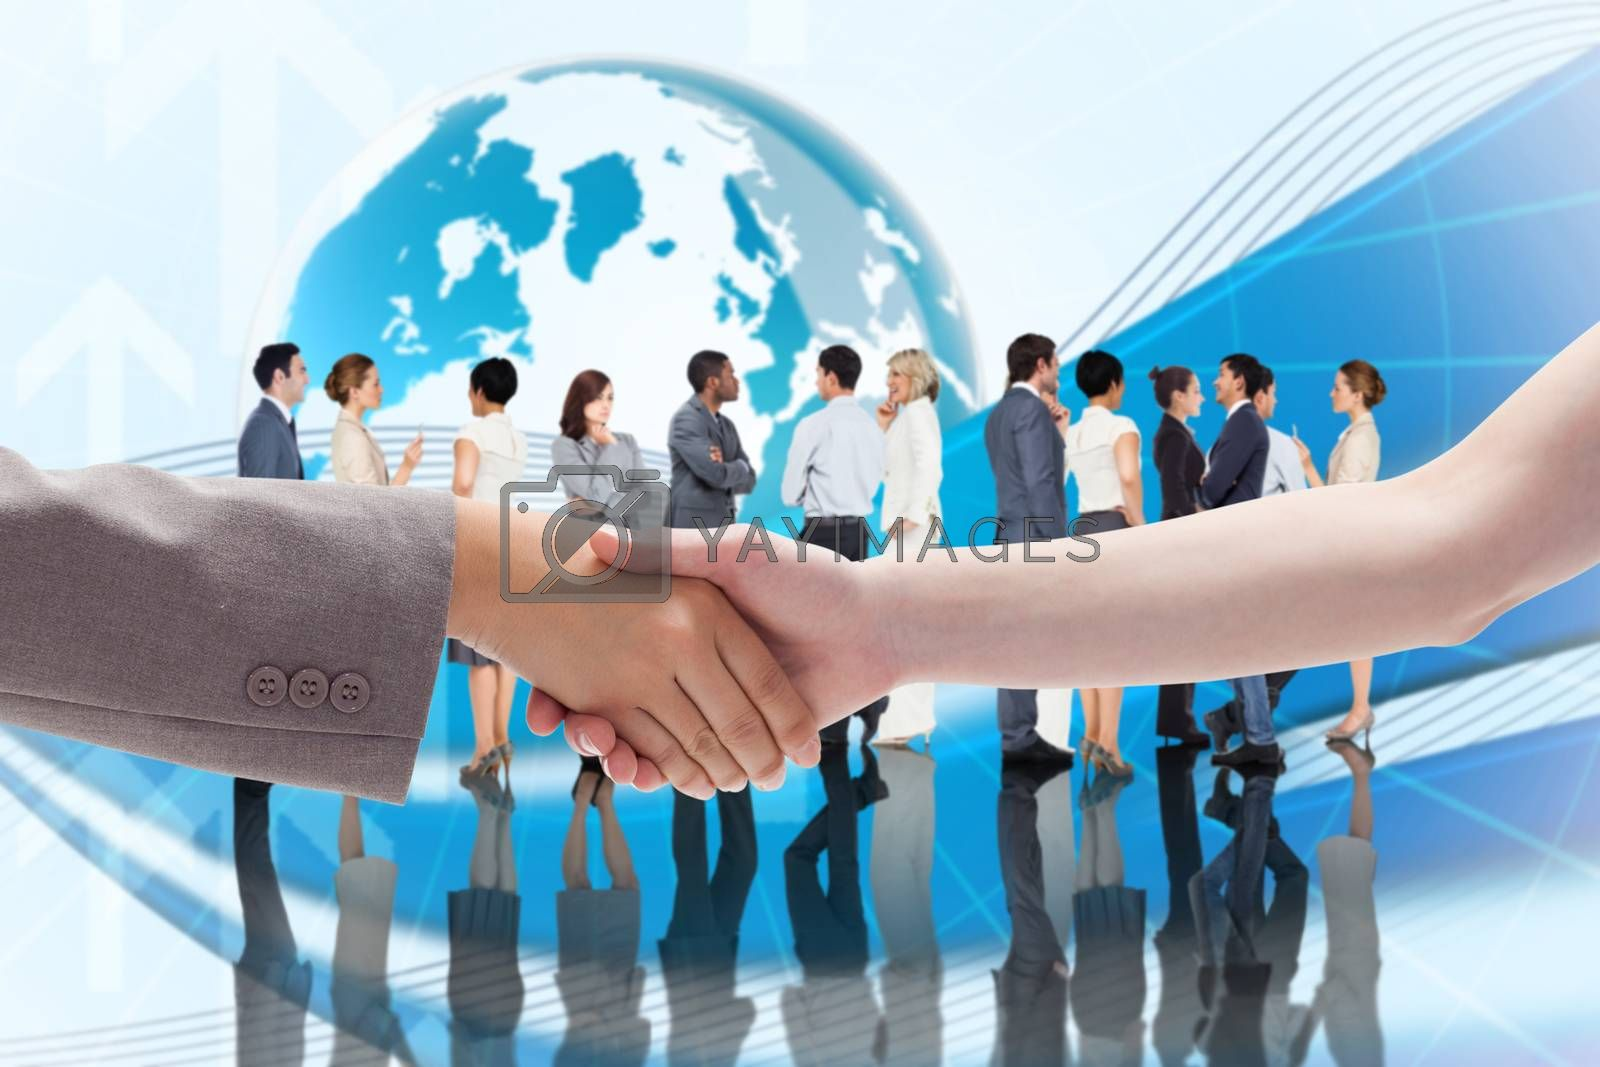 Handshake between two women against global business graphic in blue